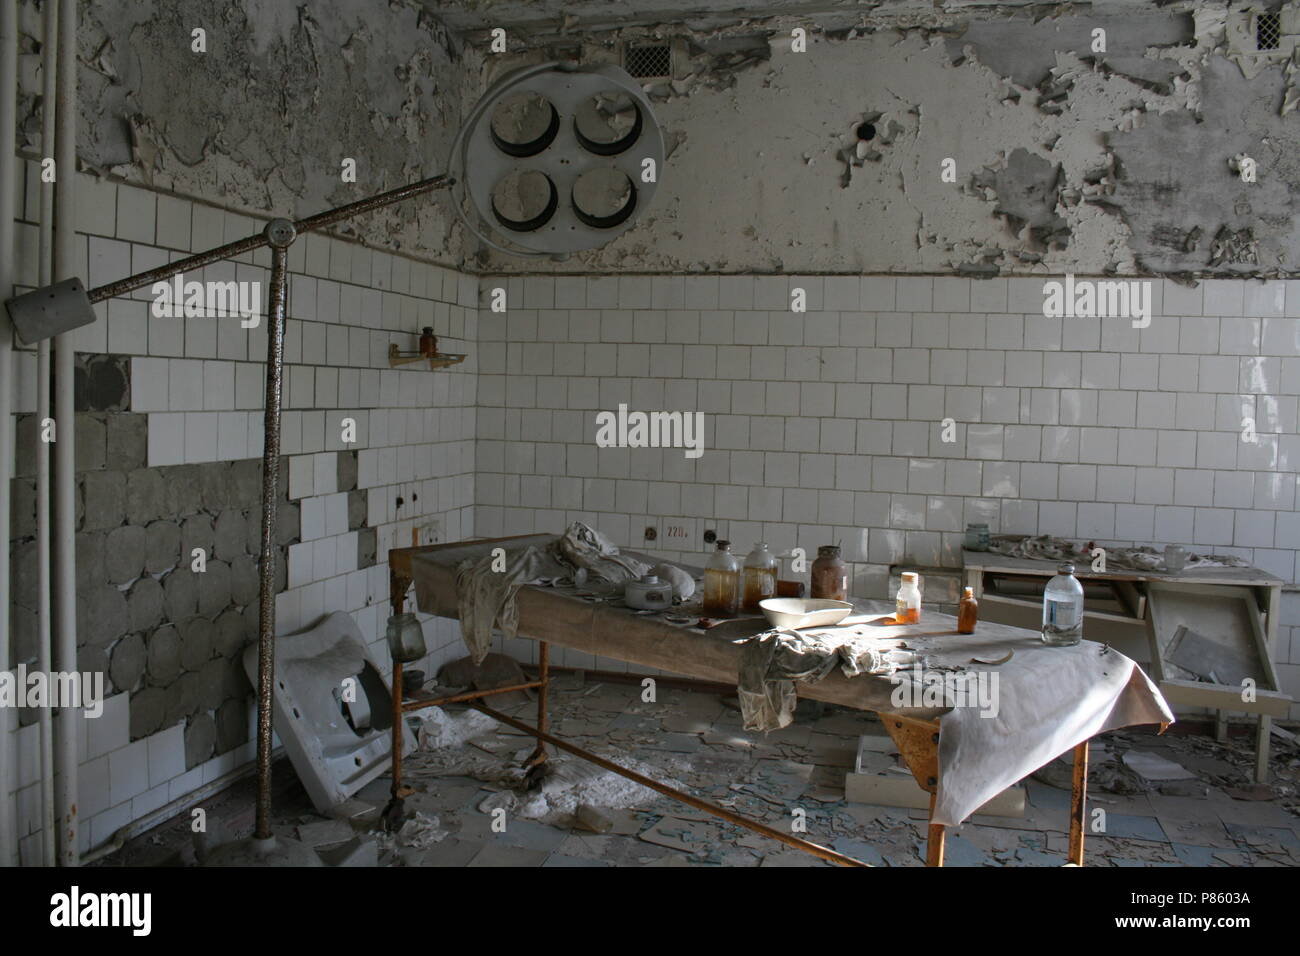 Operating Theatre inside the main hospital at Pripyat - Inside the exclusion zone at Chernobyl, Ukraine - Stock Image